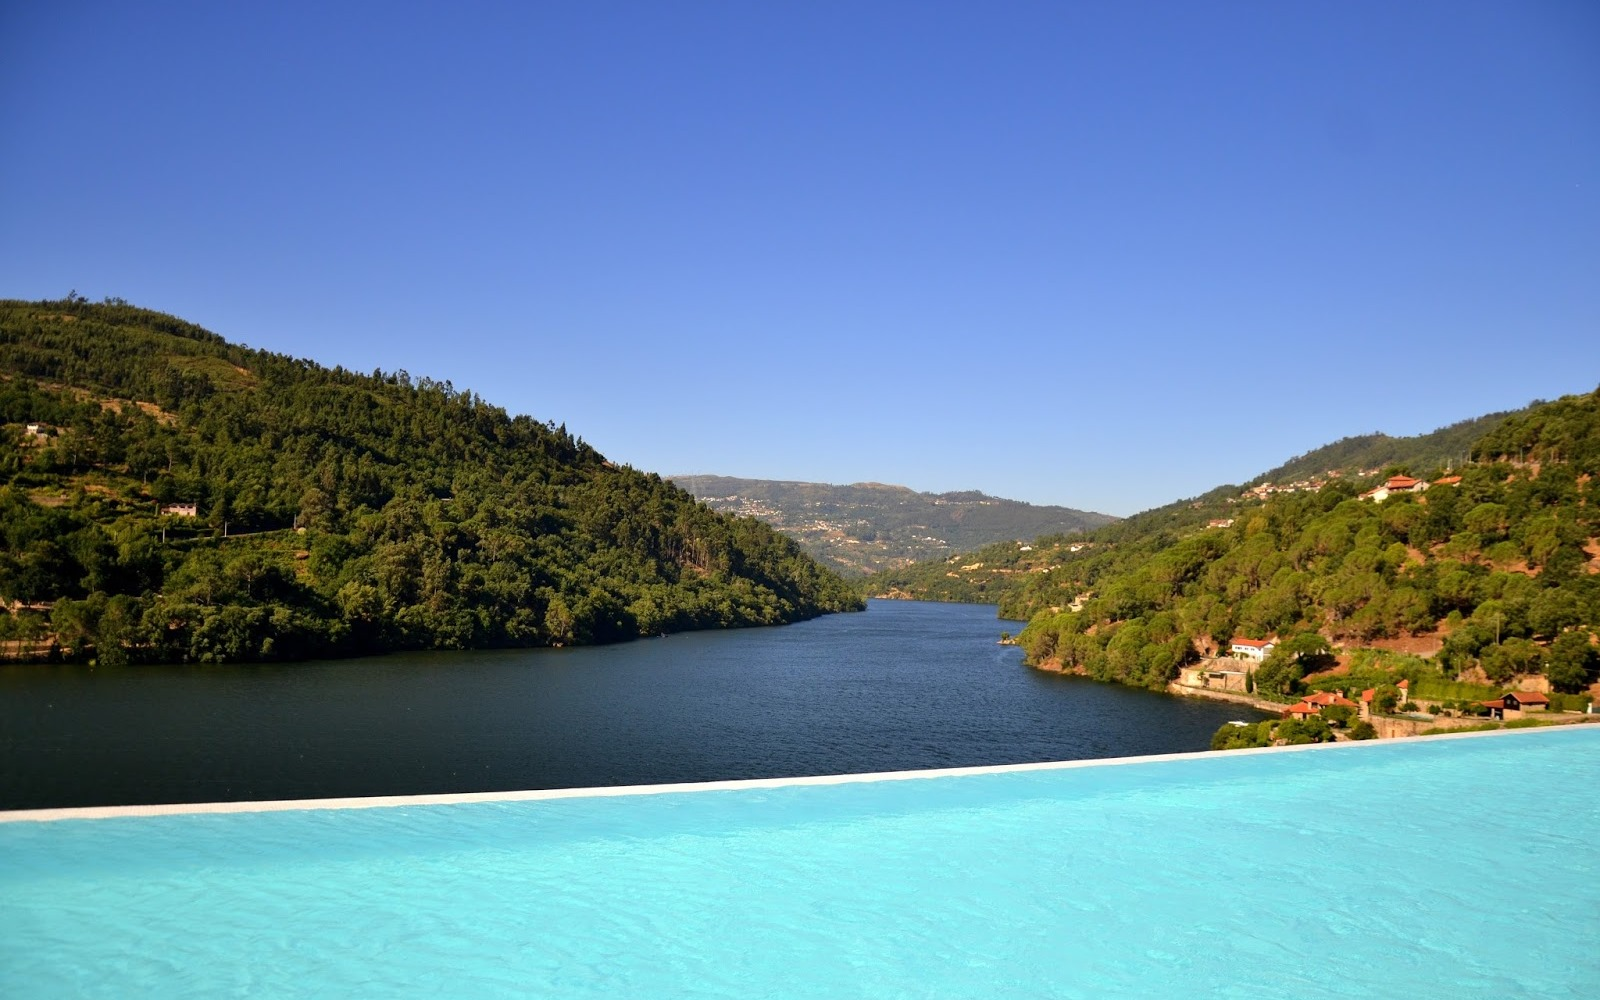 Douro Royal Valley - Experience